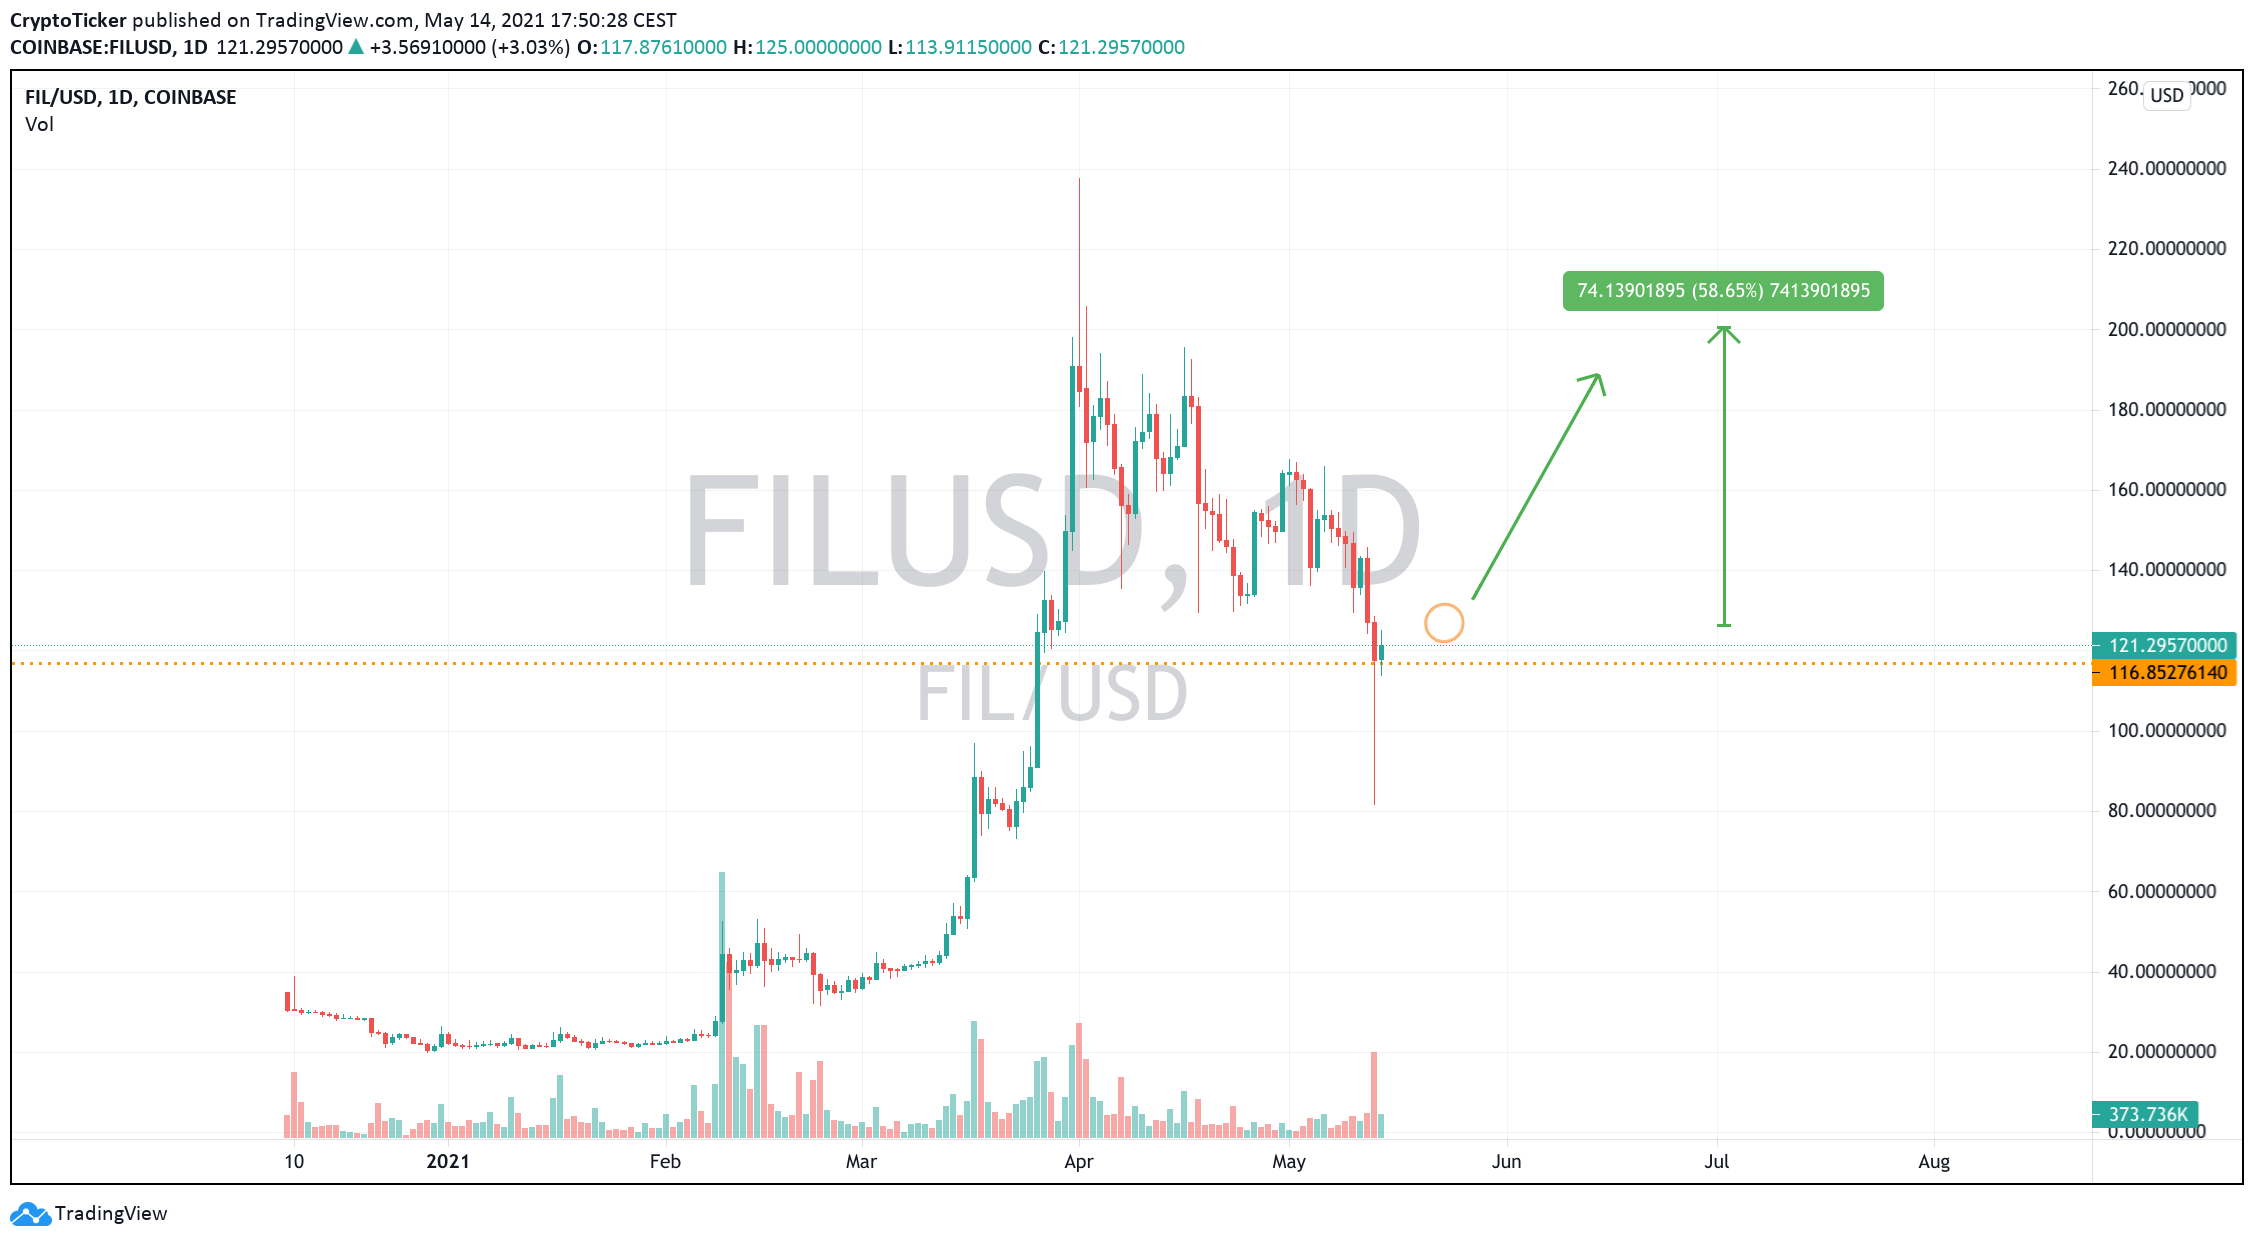 FIL/USD 1-Day chart showing a potential setup for Filecoin